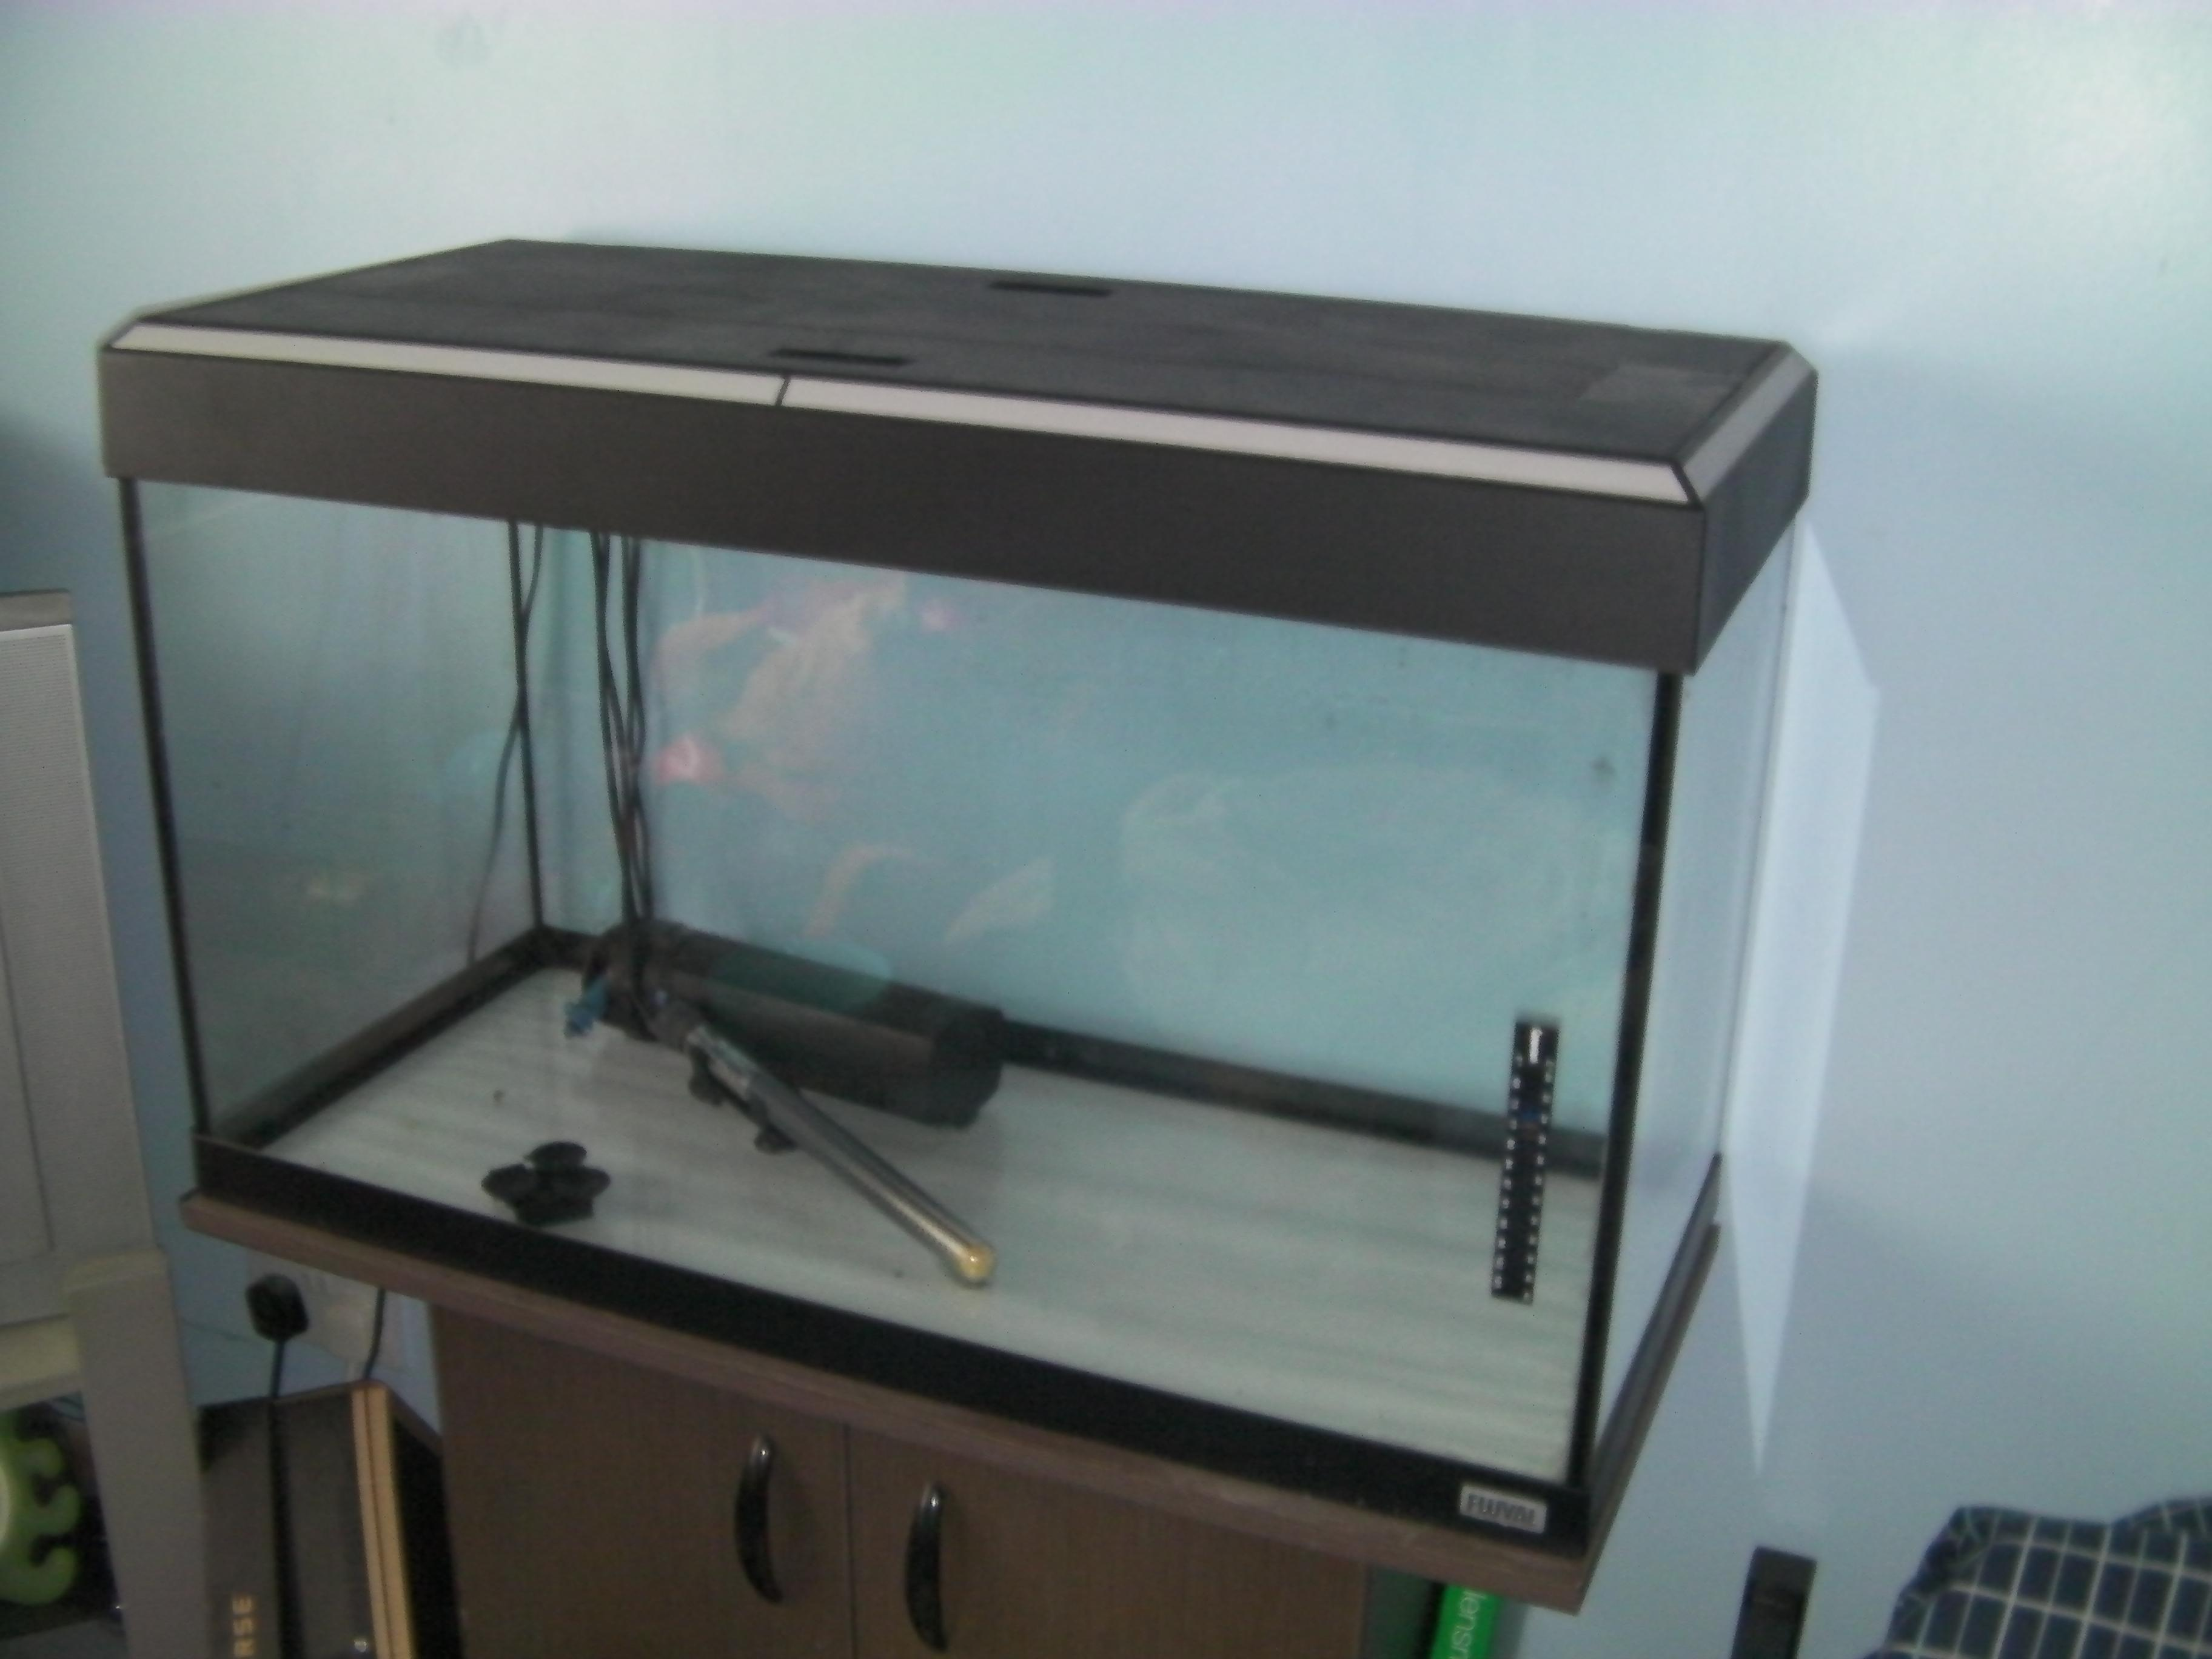 Fluval roma 240 aquarium fish tank - Fluval Roma 125 Stand Equipment Side View Low Jpg